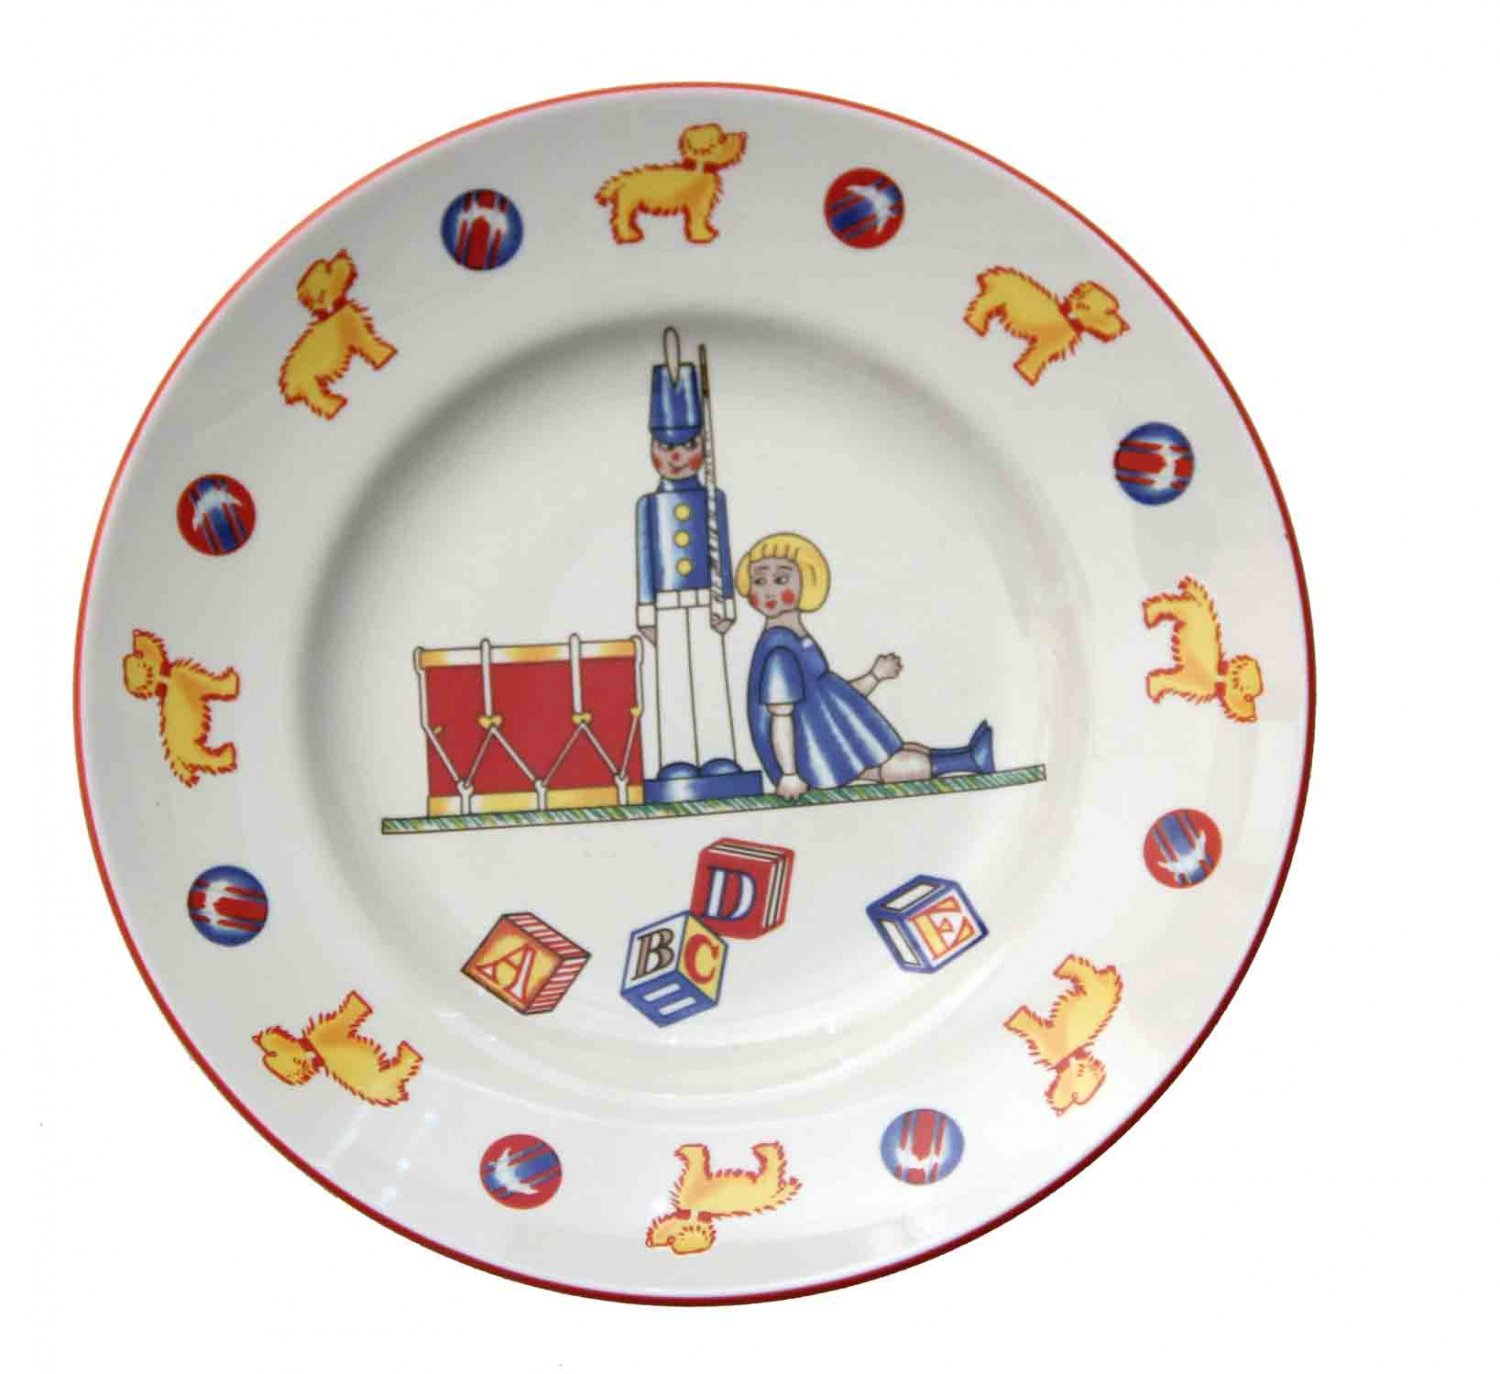 Tiffany & Co Toys Plate 7 Inches Porcelain